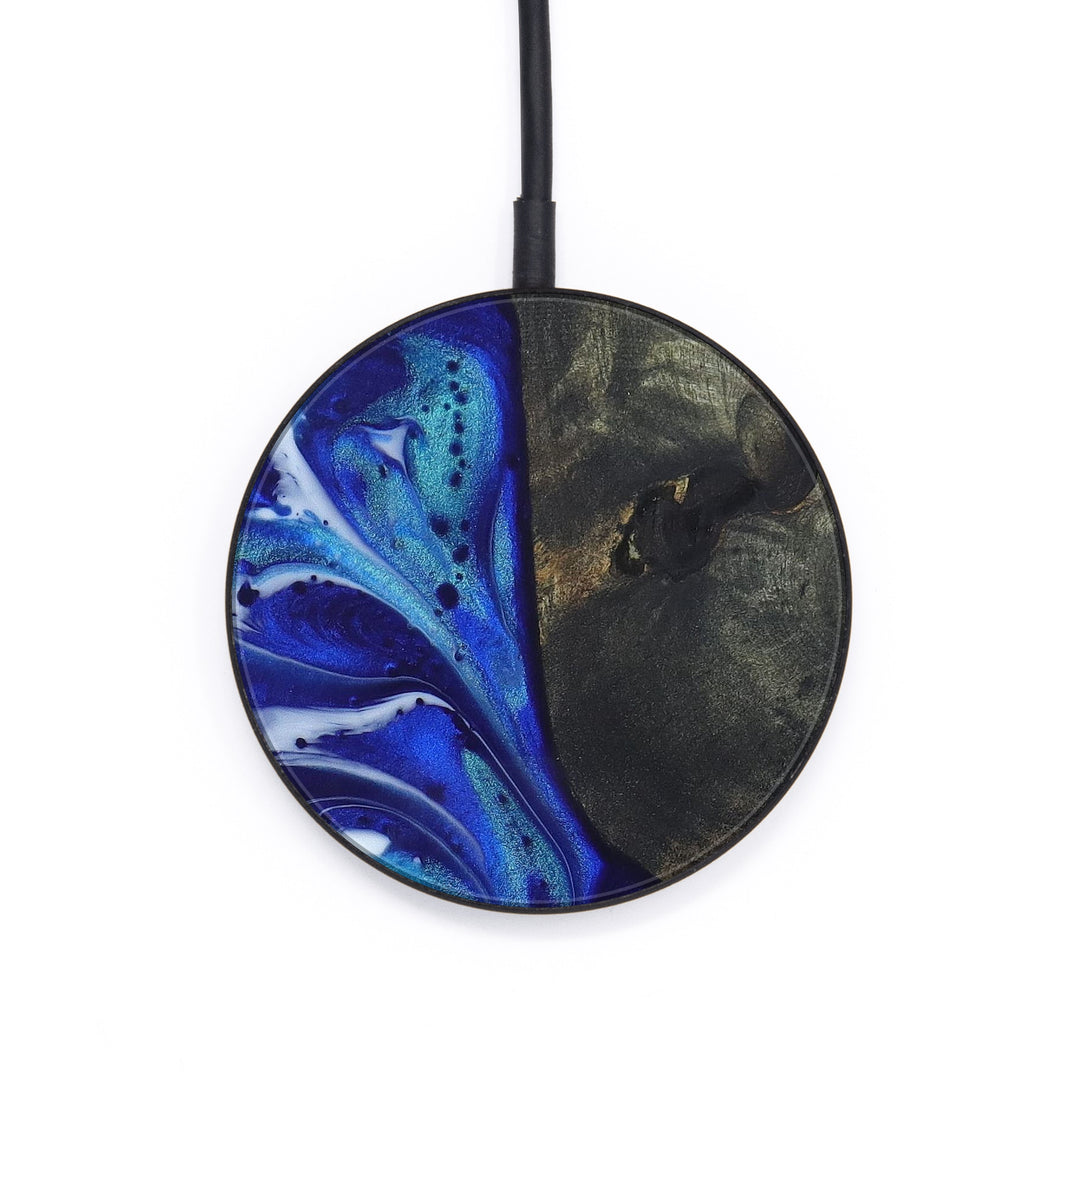 Circle Wood+Resin Wireless Charger - Rosalinda (Dark Blue, 404415)